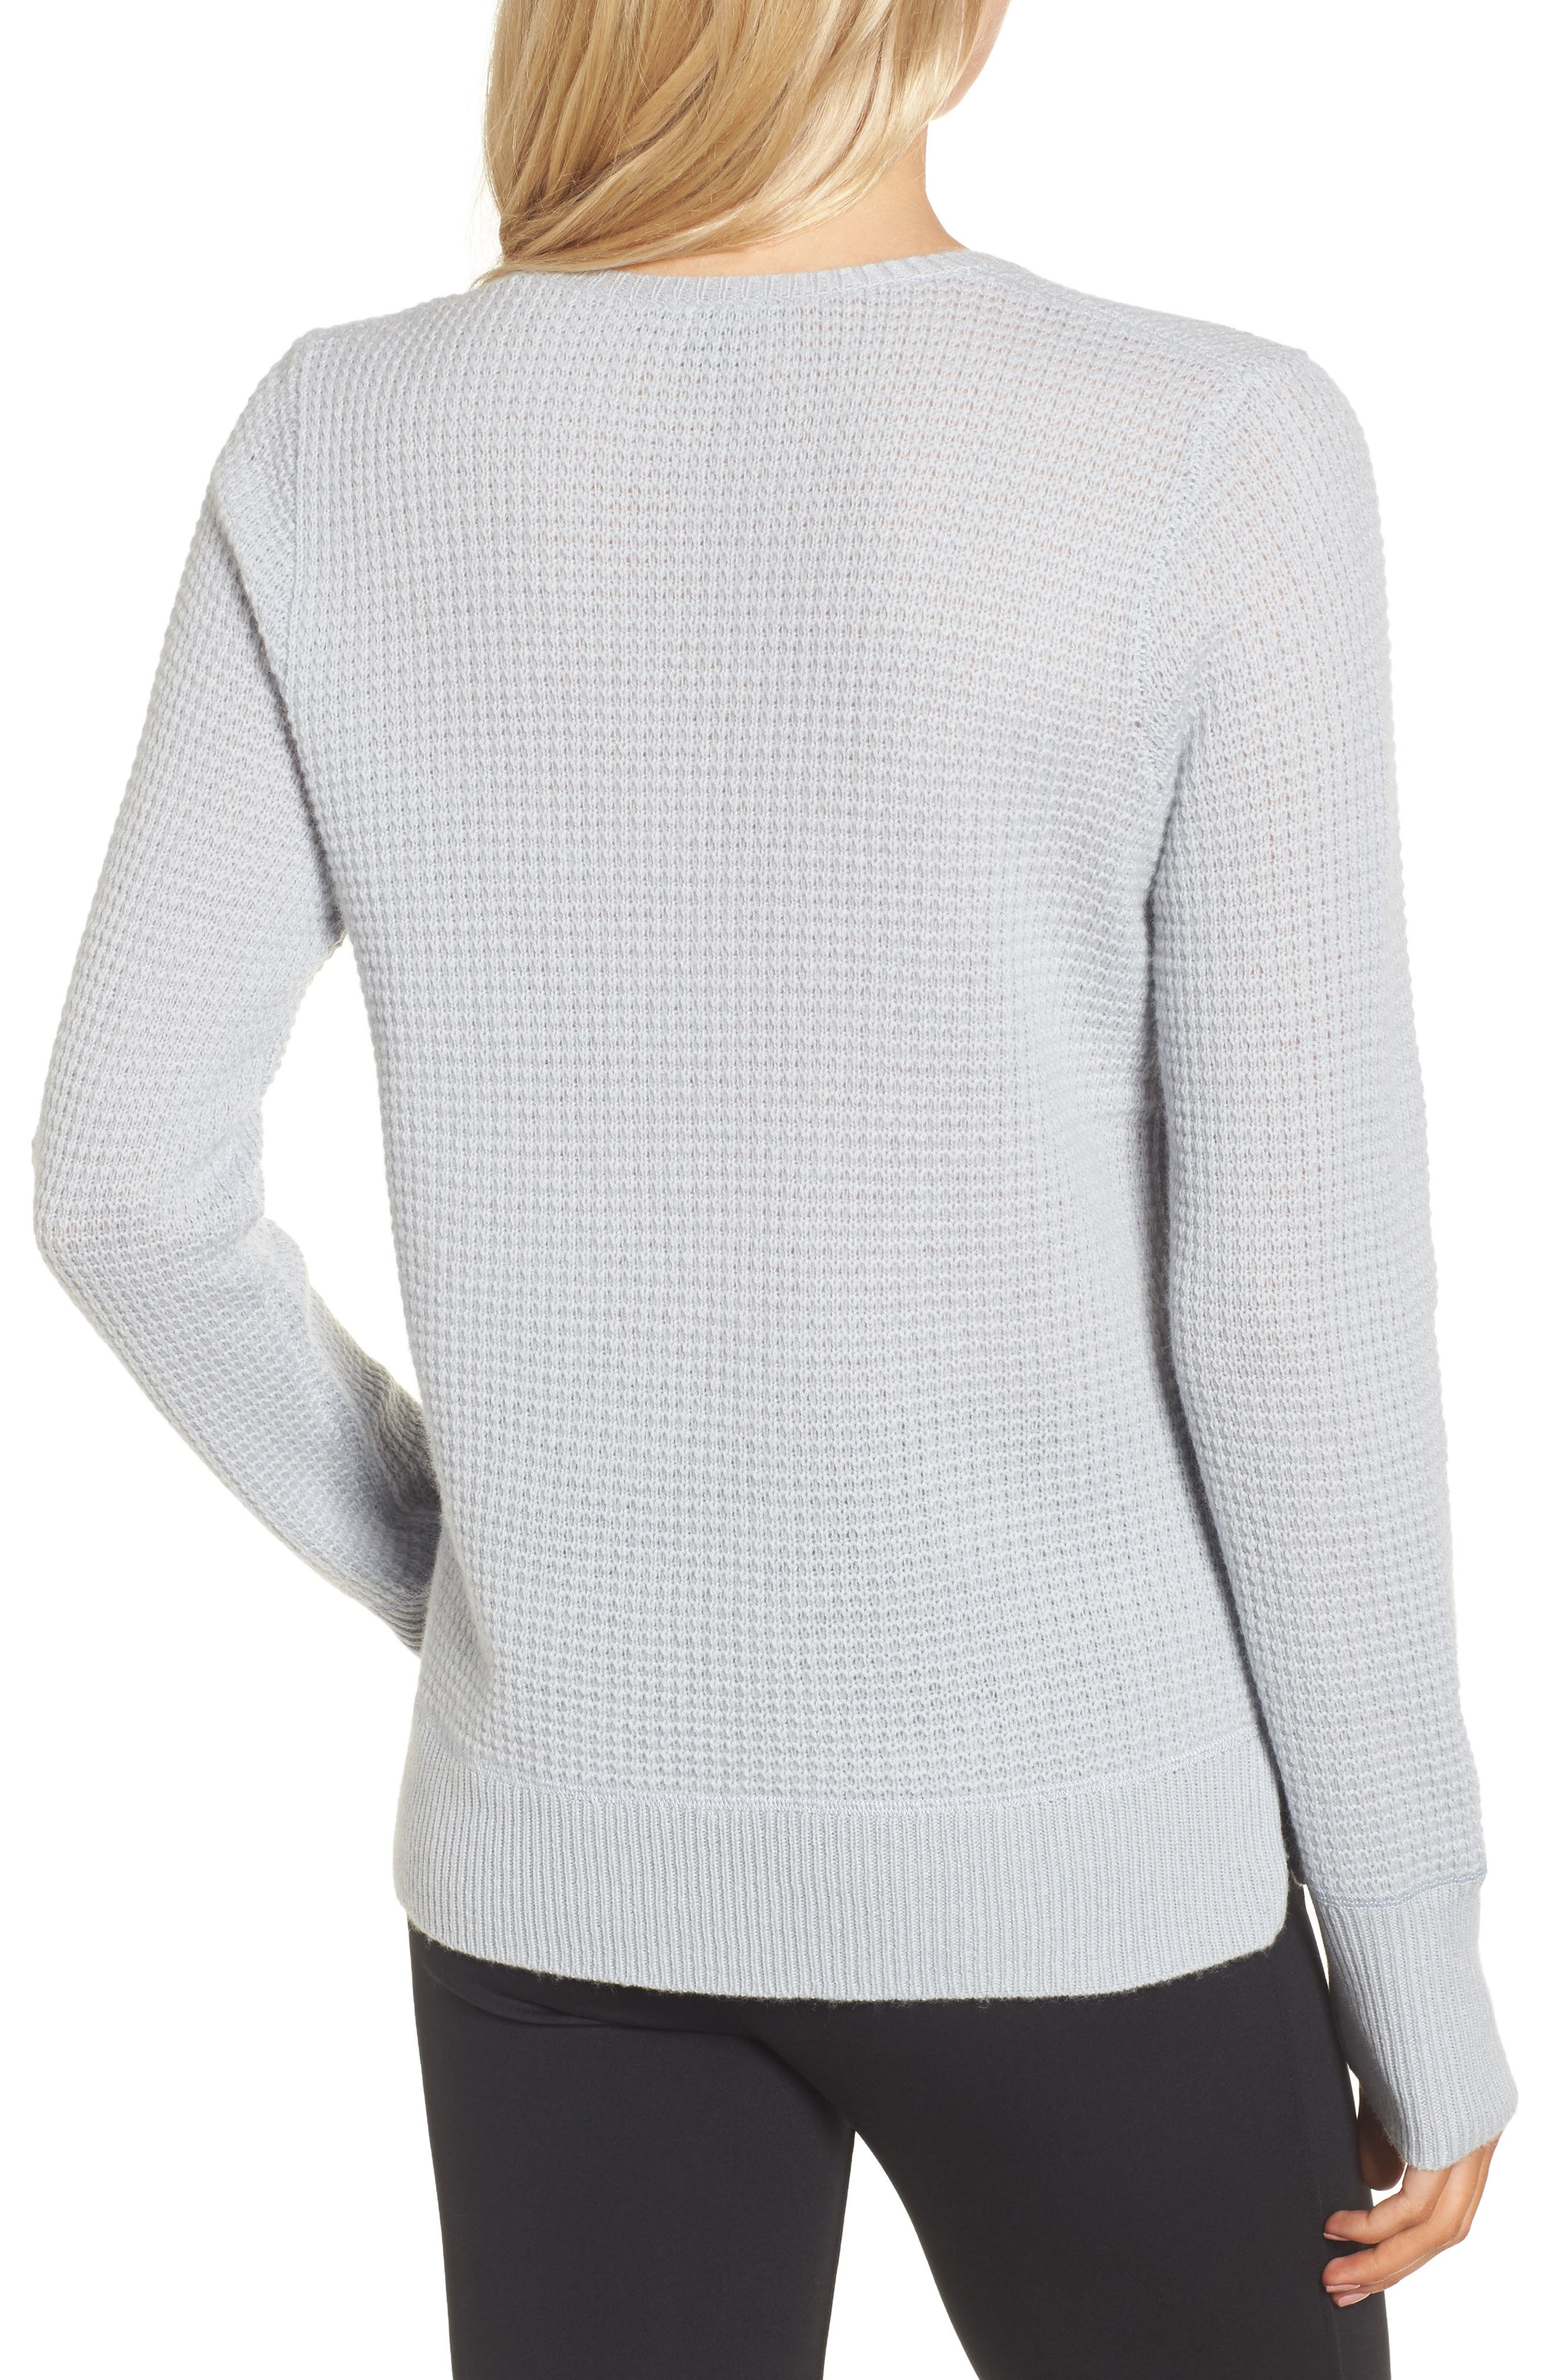 Alternate Image 2  - James Perse Cashmere Thermal Sweater